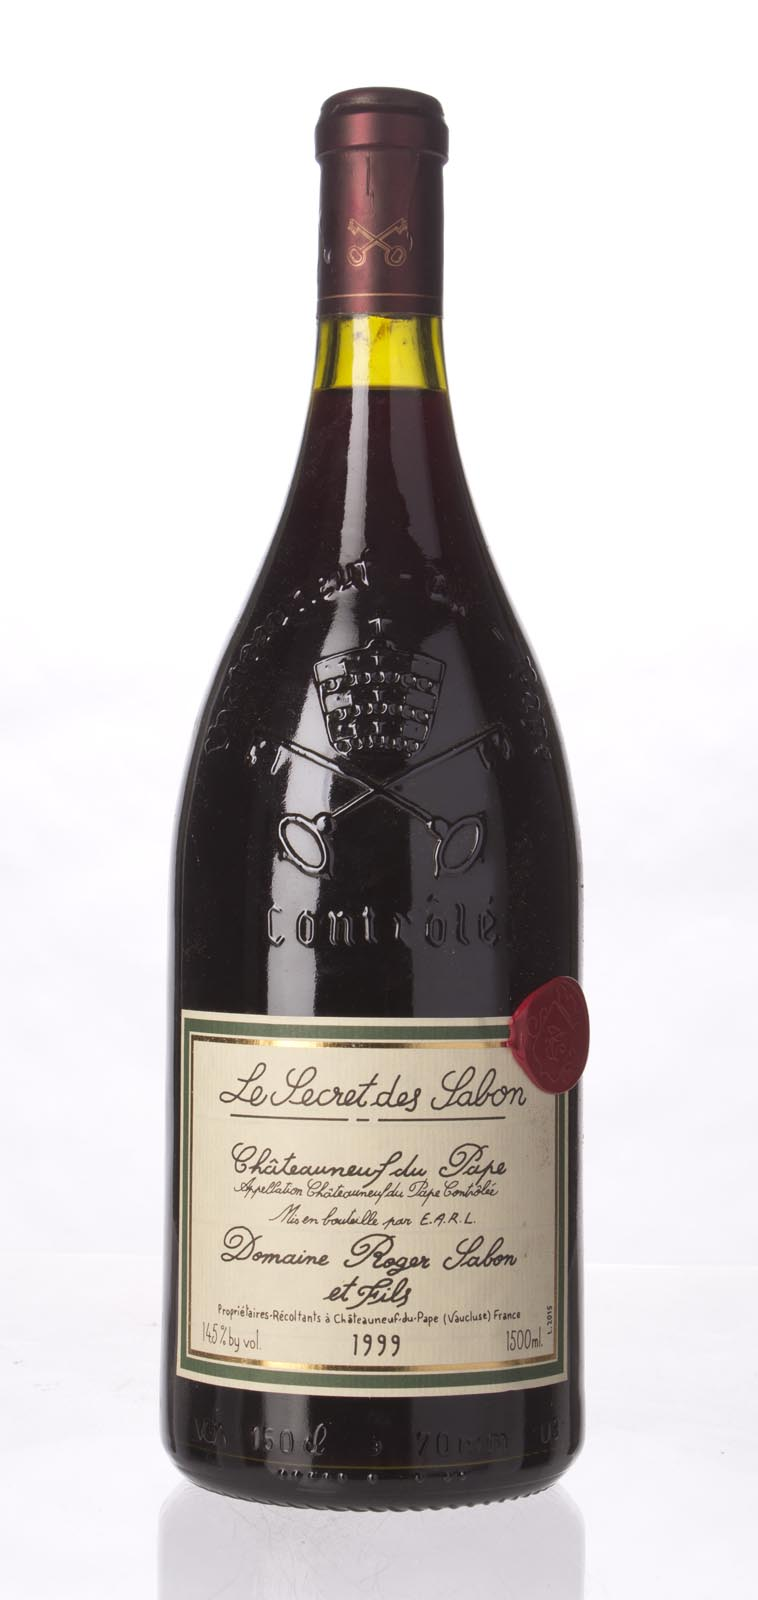 Domaine Roger Sabon Chateauneuf du Pape le Secret de Sabon 1999, 1.5L (WA96) from The BPW - Merchants of rare and fine wines.